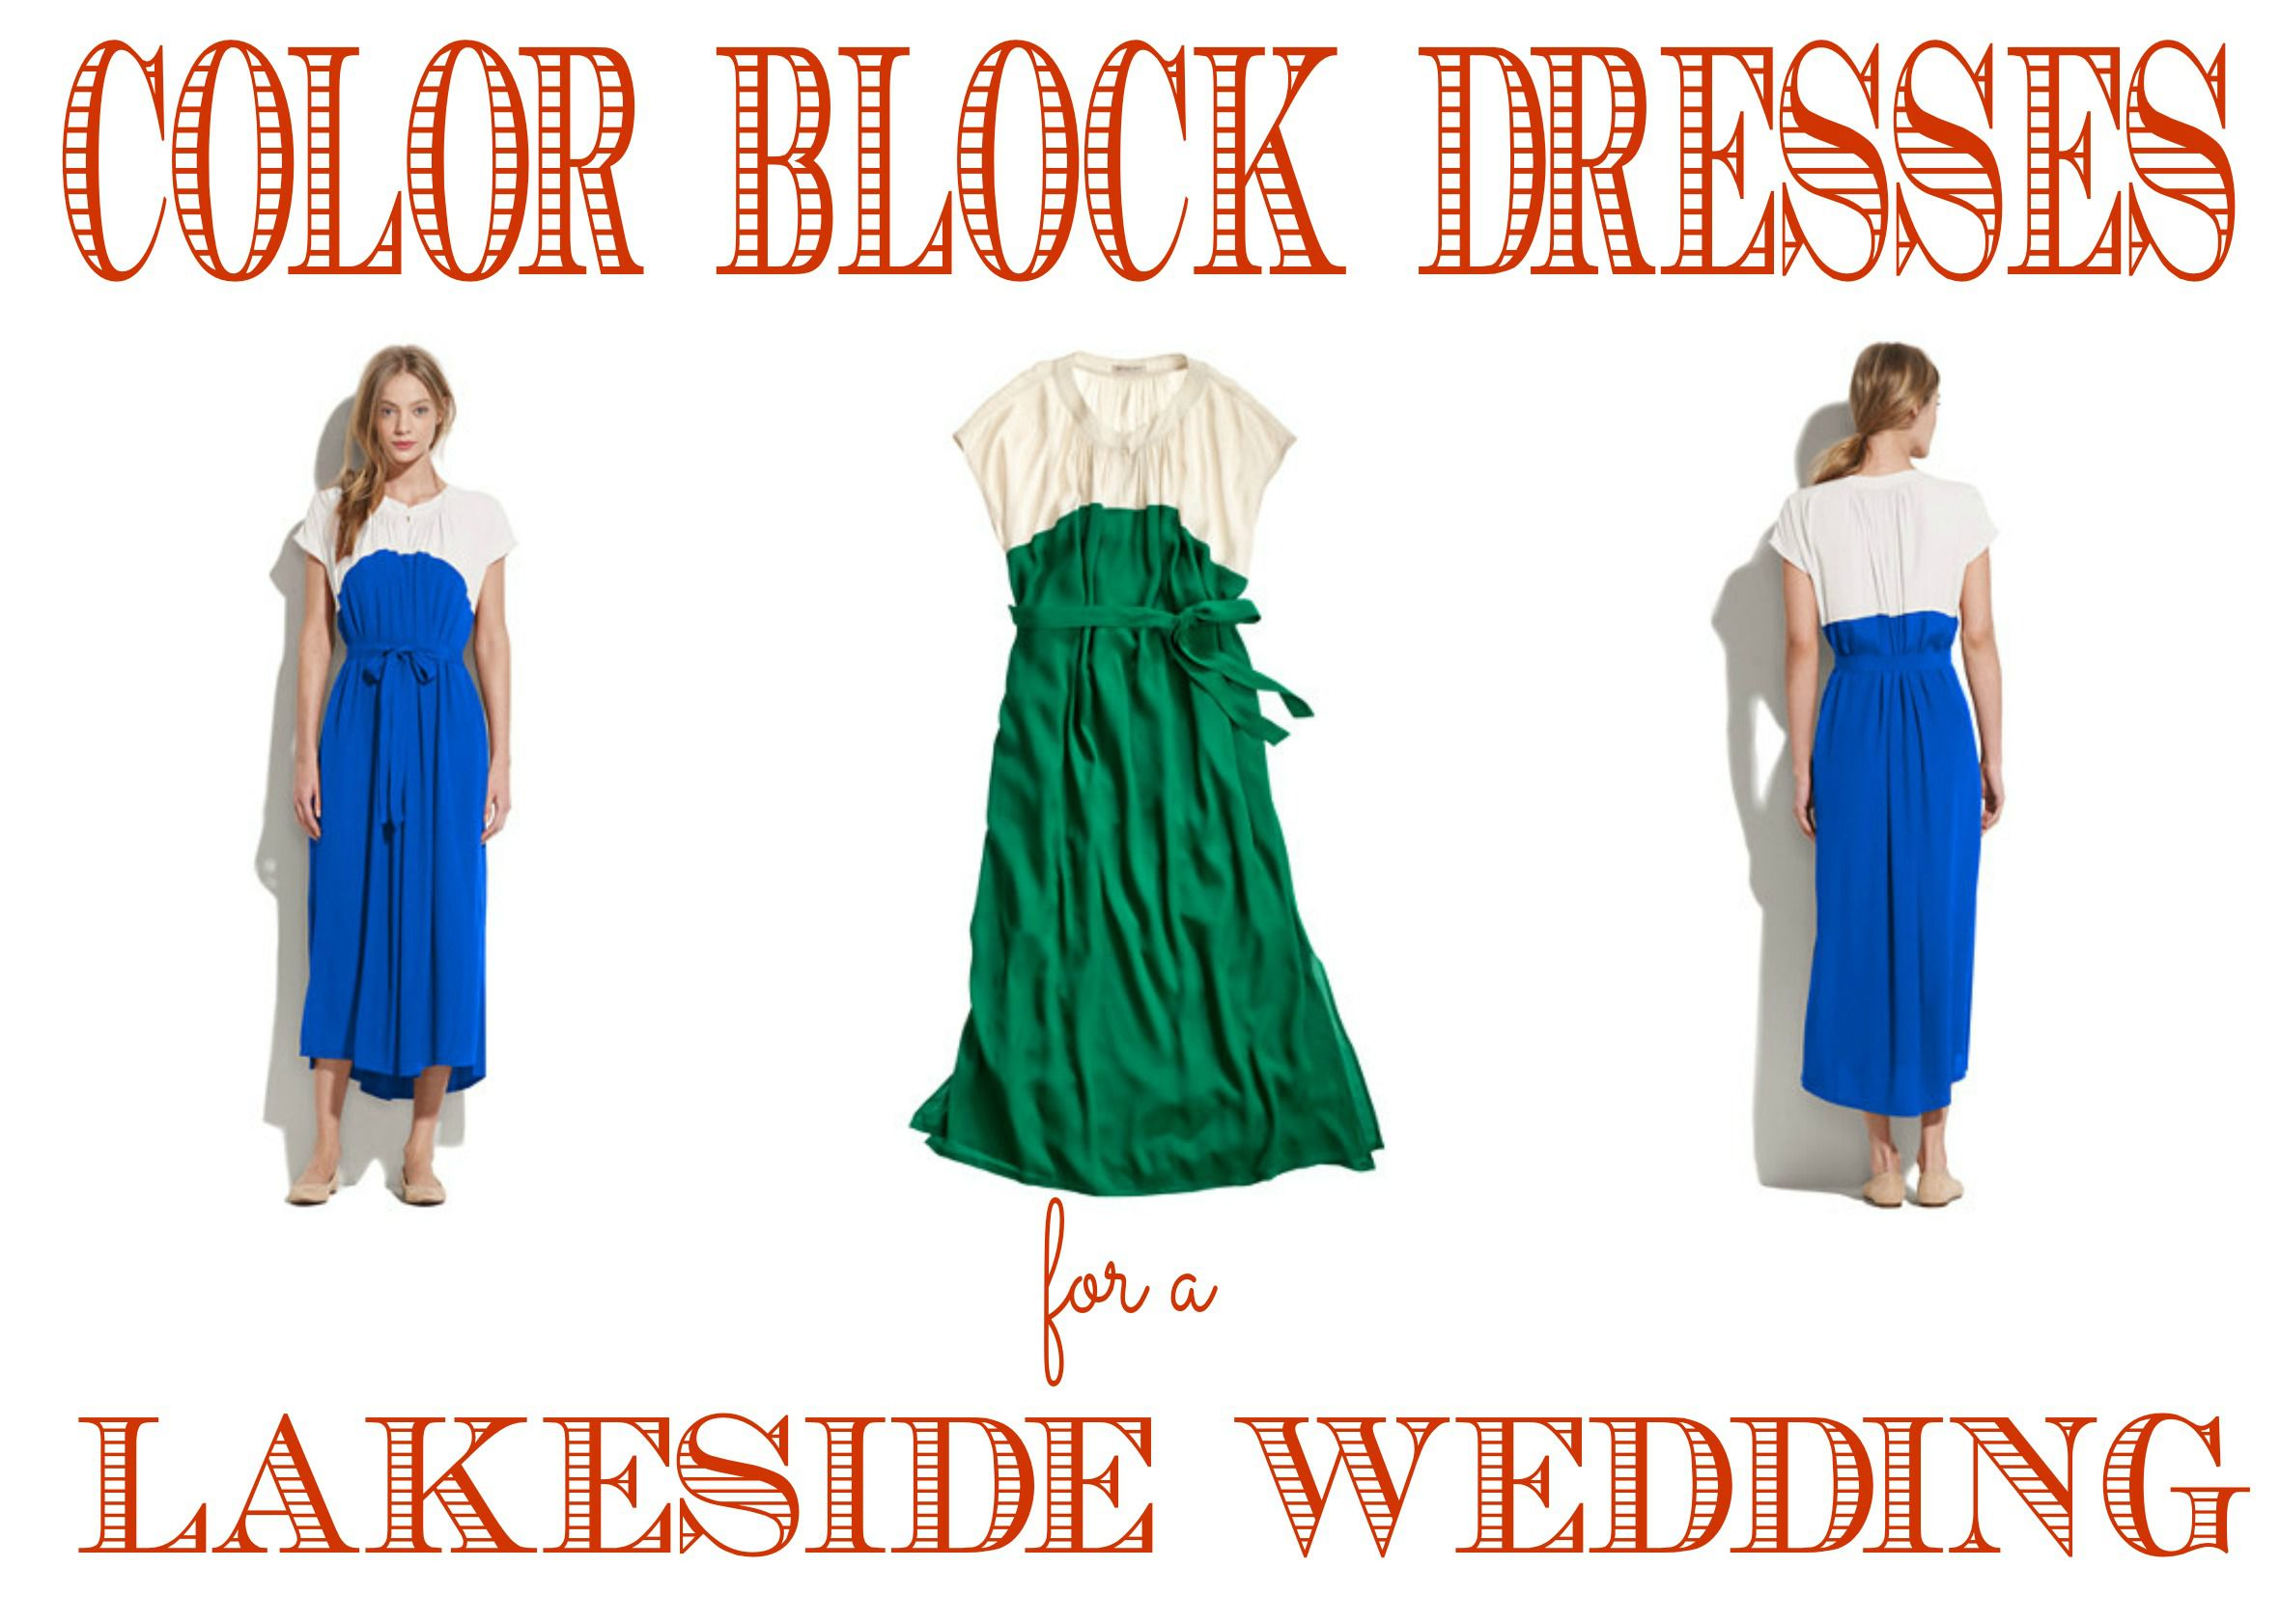 Color Block Dresses for A Lakeside Wedding